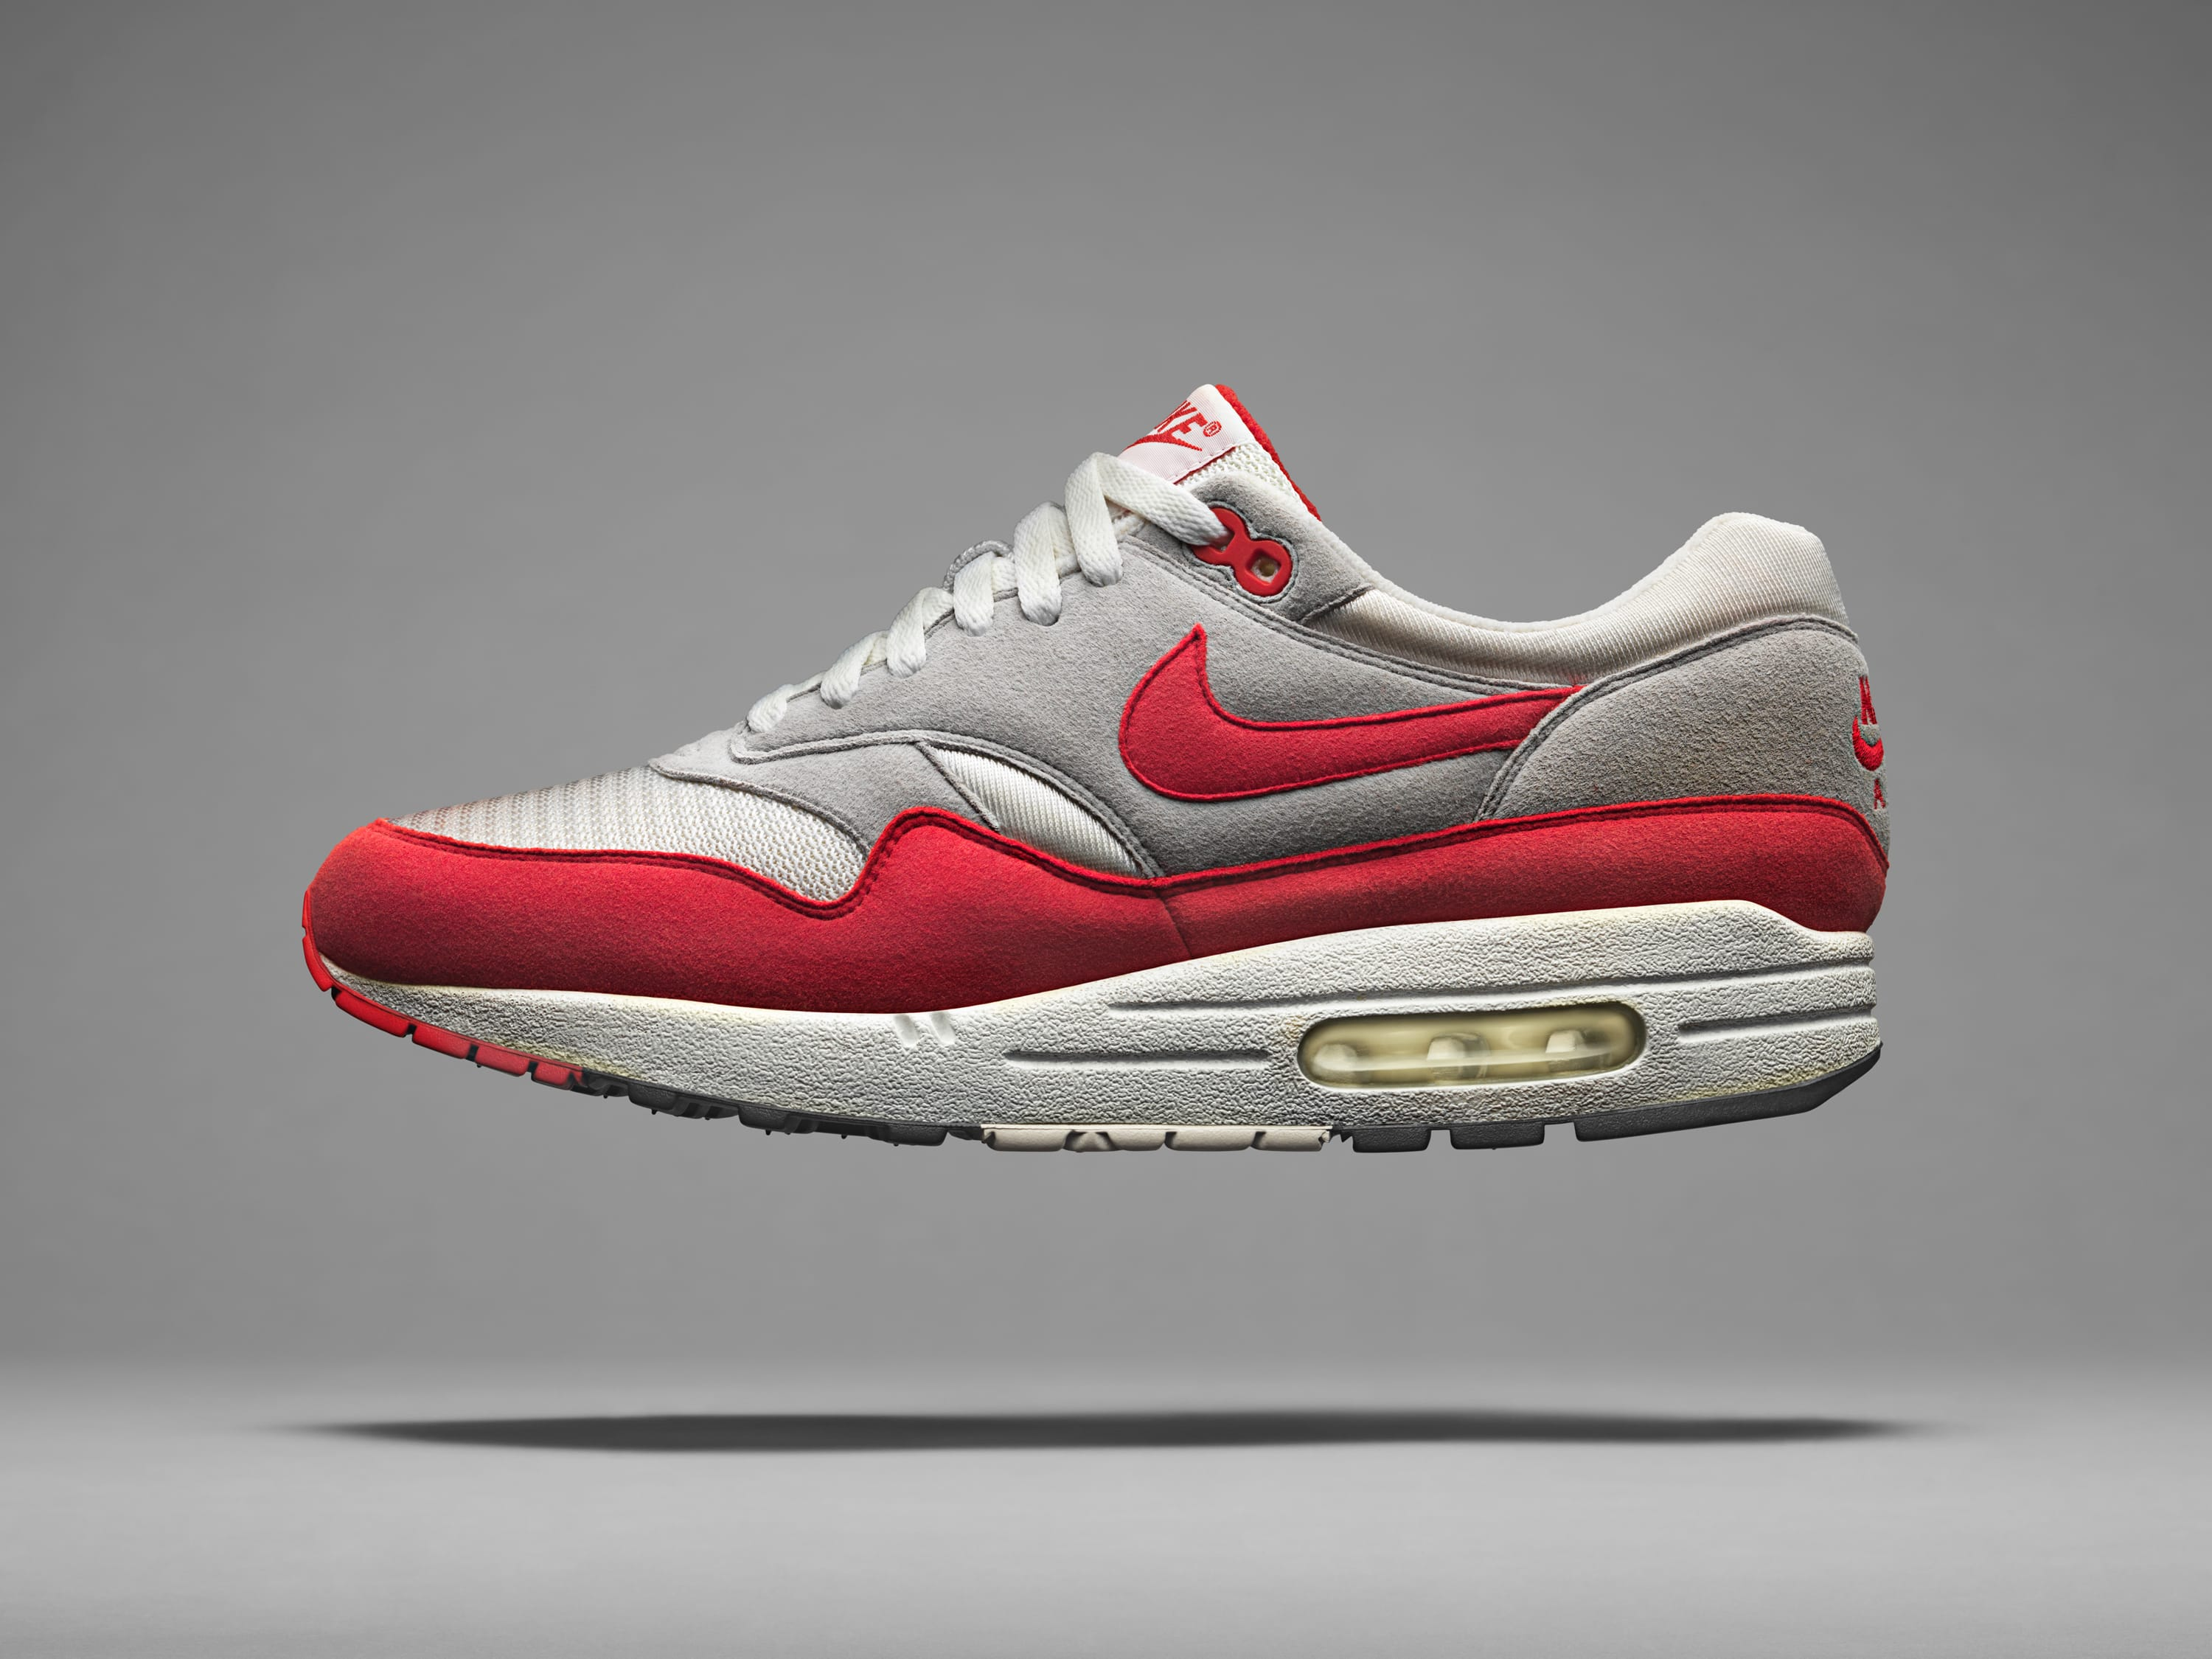 Nike Air Max 1 Dark Stucco 875844 201